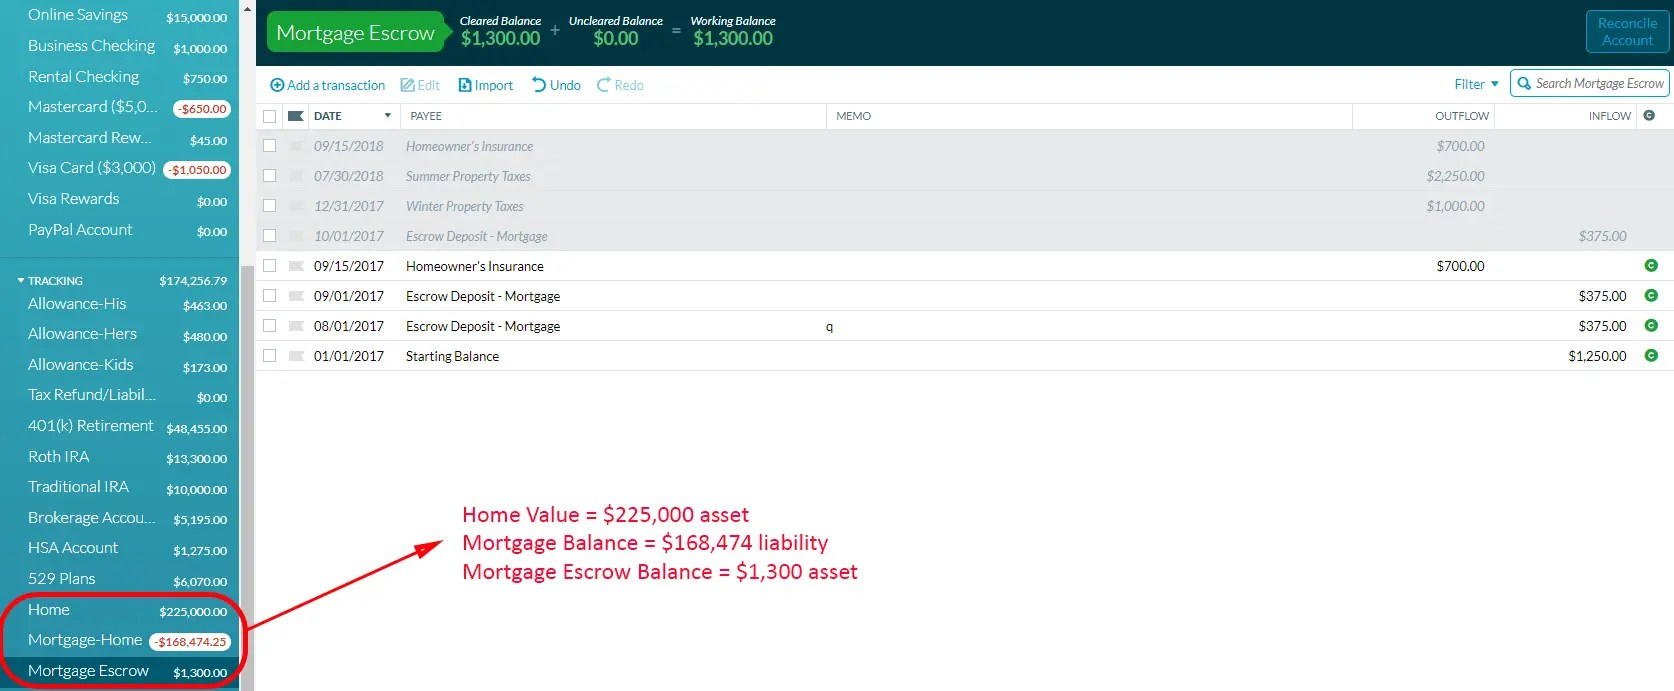 Using YNAB to track mortgage escrow accounts (along with home value and mortgage balance)